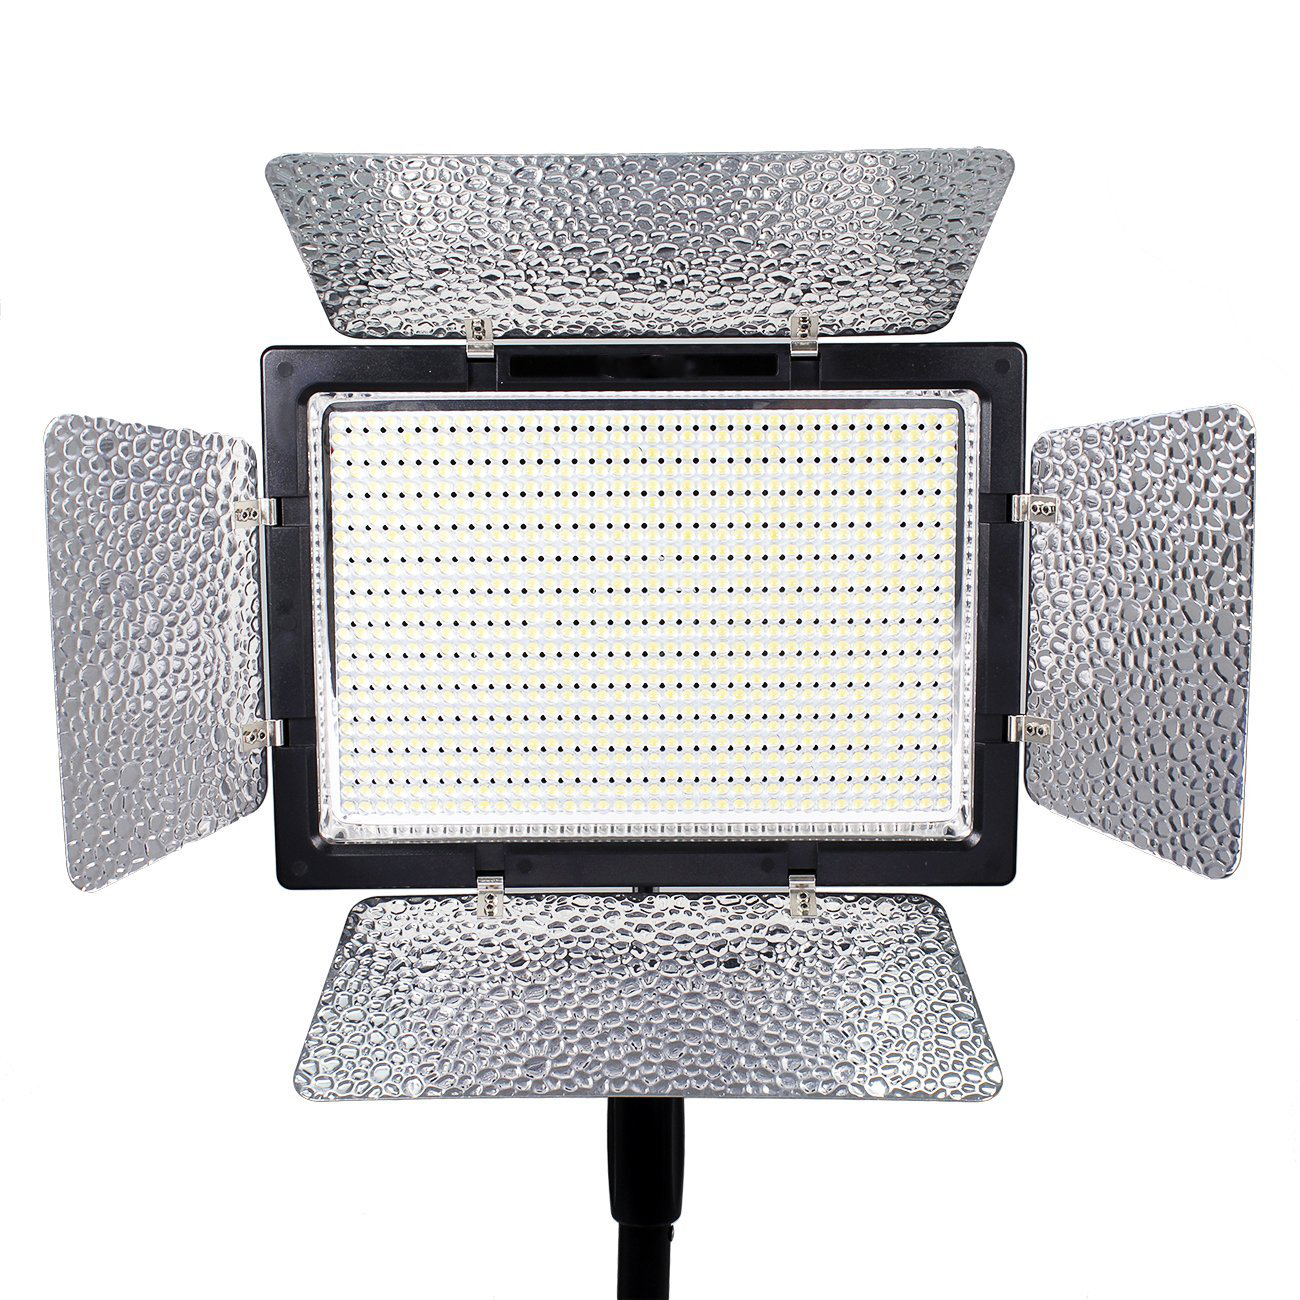 Location Eclairage Led Panneau Led Eclairage Video Batterie Camera 900 Location